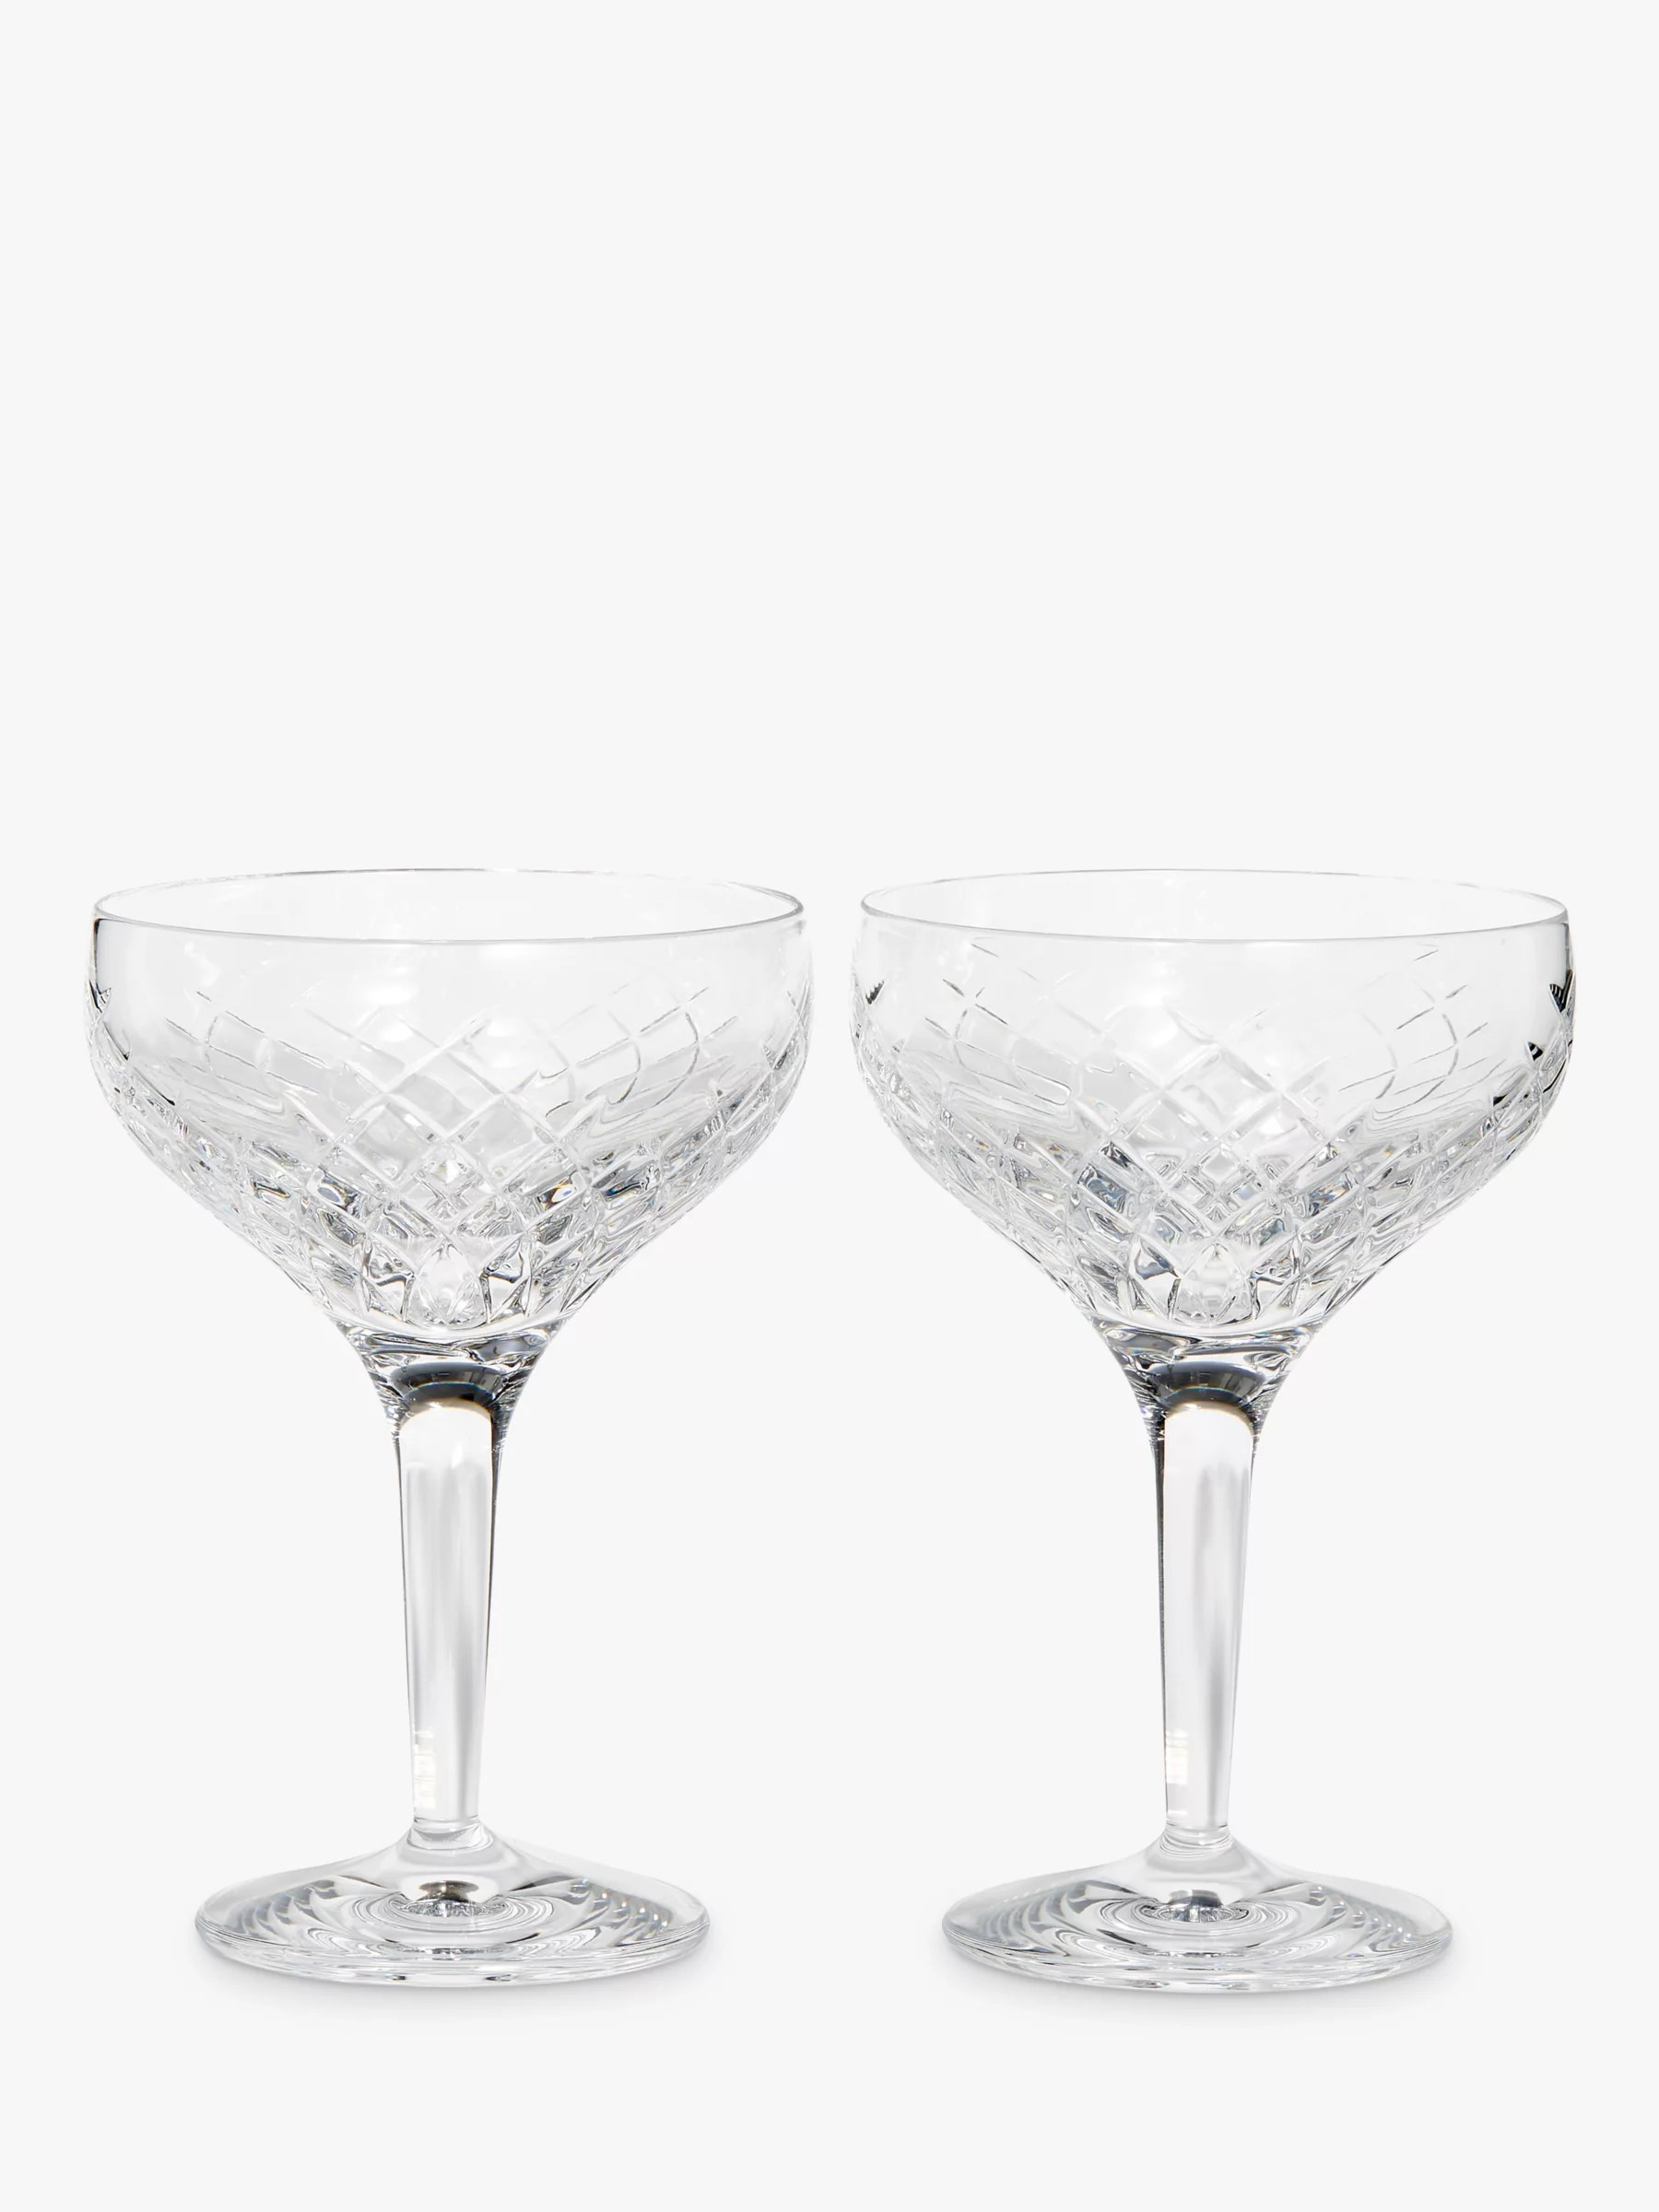 Champagne Coupe Soho Home Barwell Crystal Cut Champagne Coupe Glasses 250ml Set Of 2